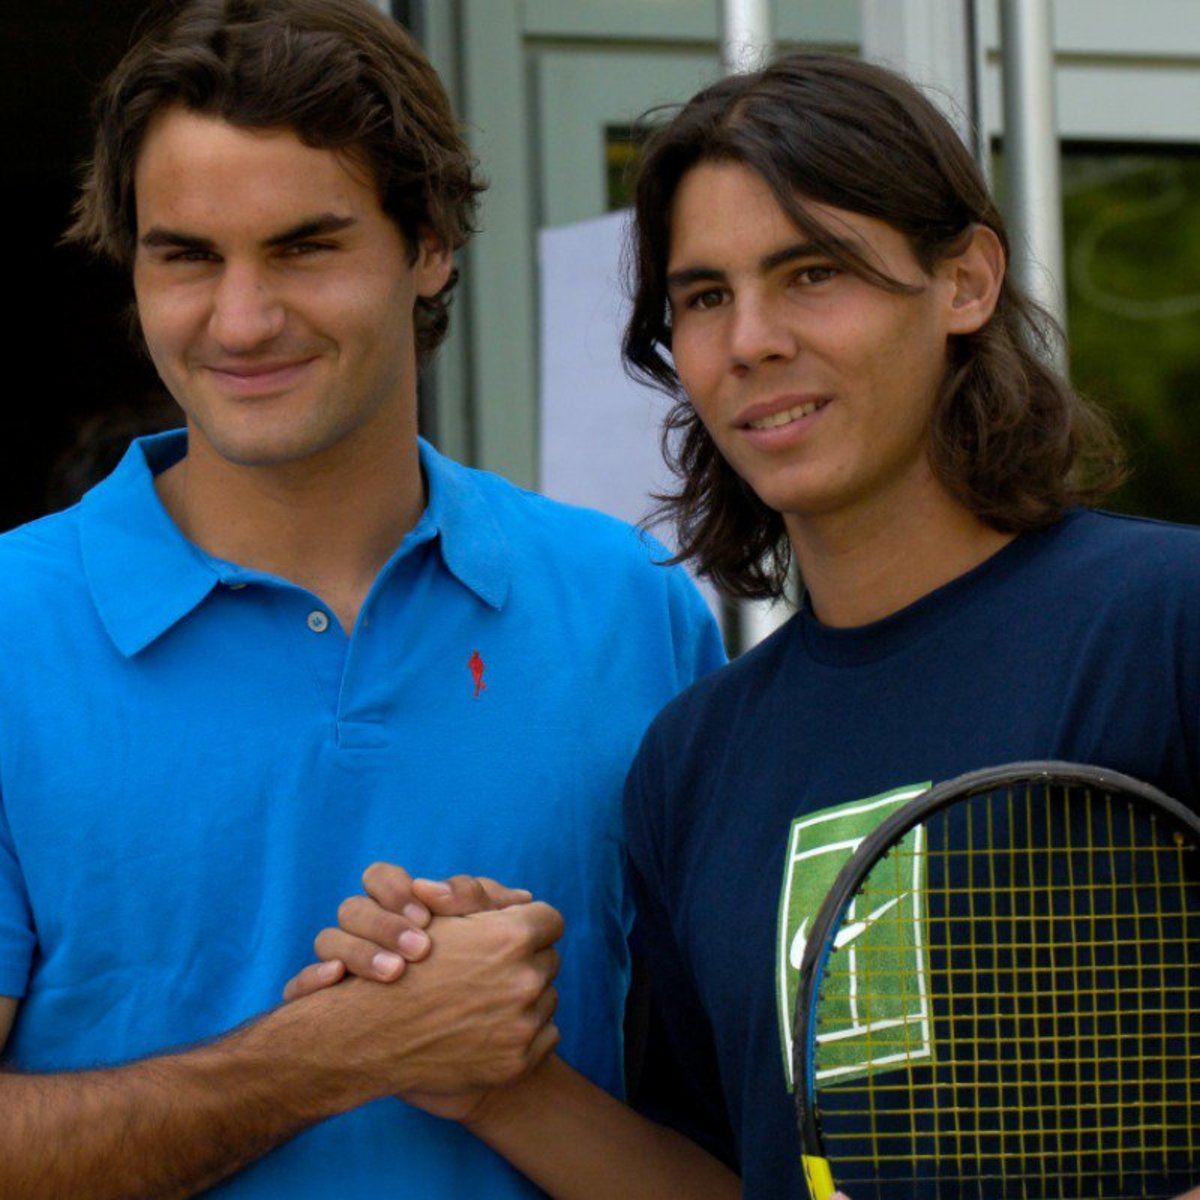 Rafael Nadal And Roger Federer S Friendship At Wimbledon 2019